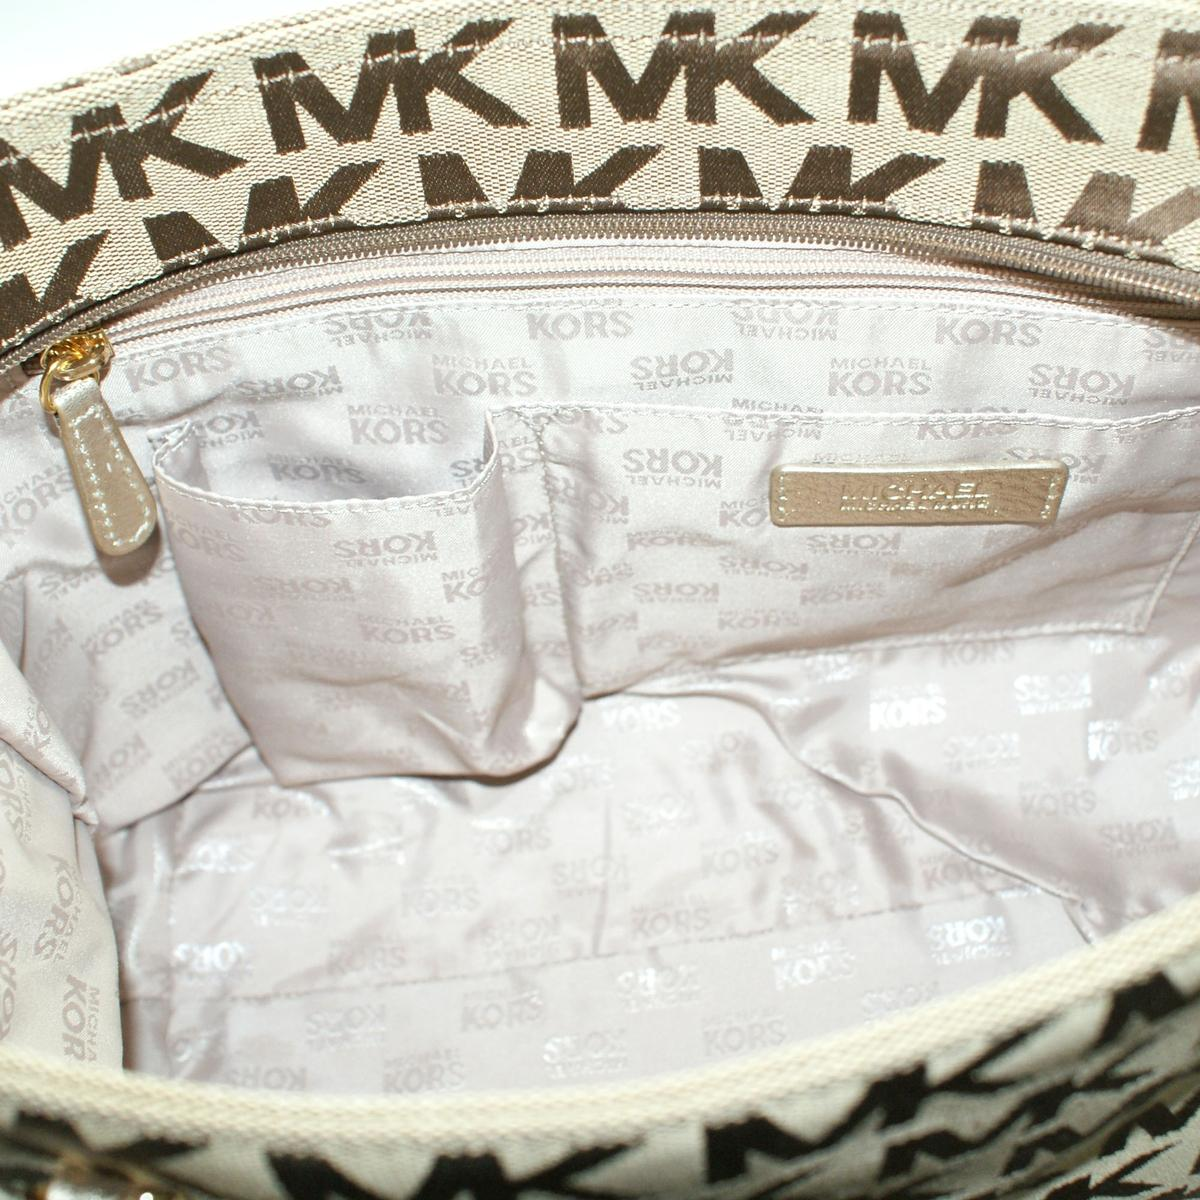 204306b0a4cc Home · Michael Kors · Jet Set Chain MK Signature Jacquard Tote/ Shoulder  Bag Gold. CLICK THUMBNAIL TO ZOOM. Found ...